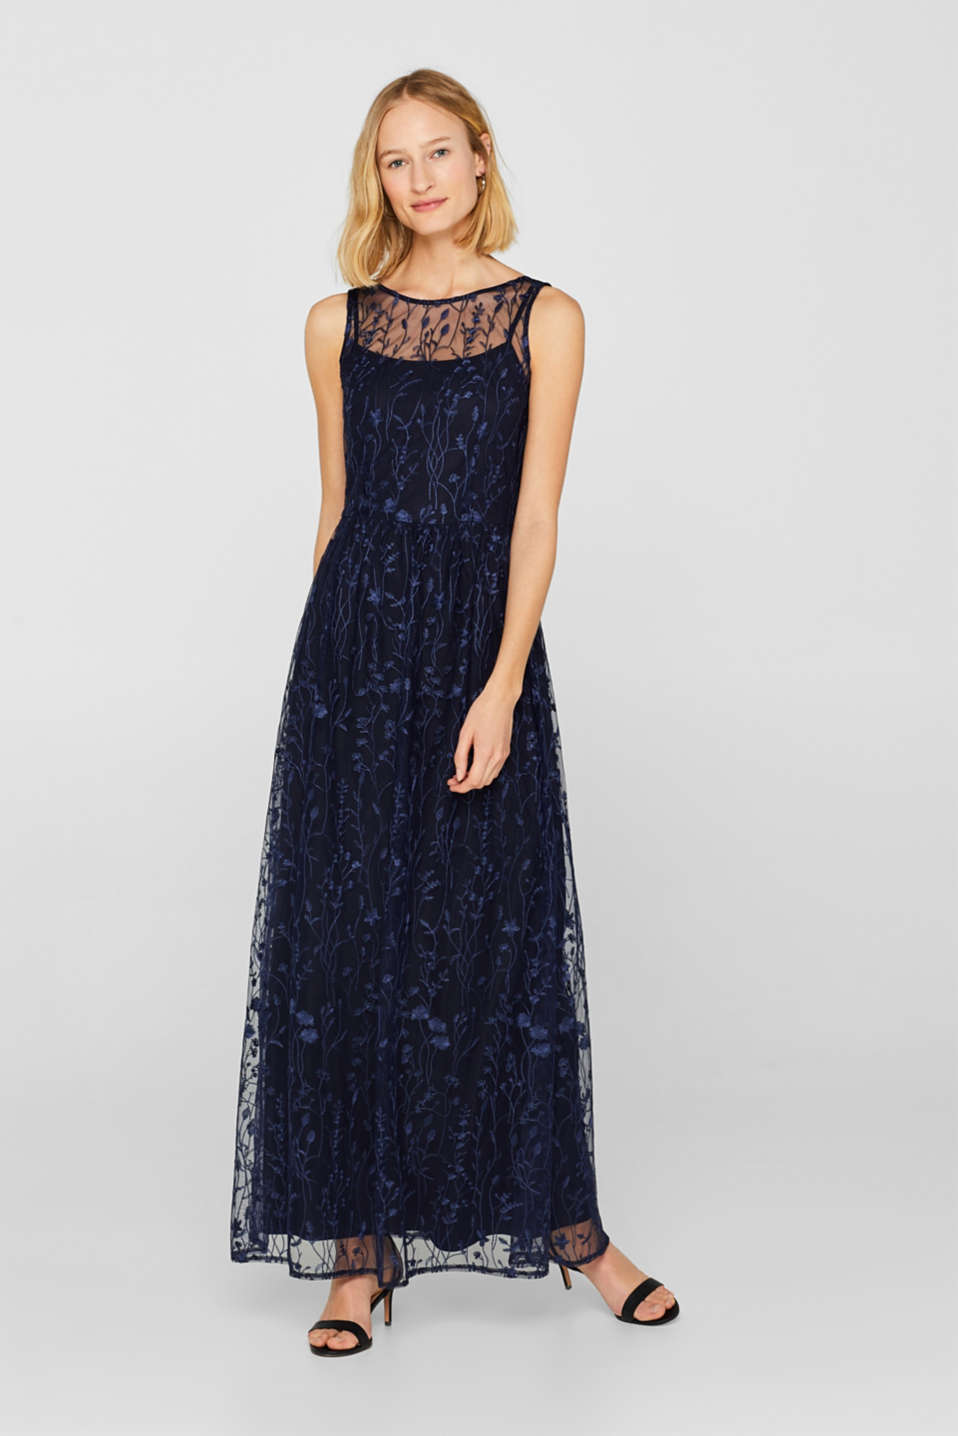 Esprit - Chiffon maxi dress with floral embroidery